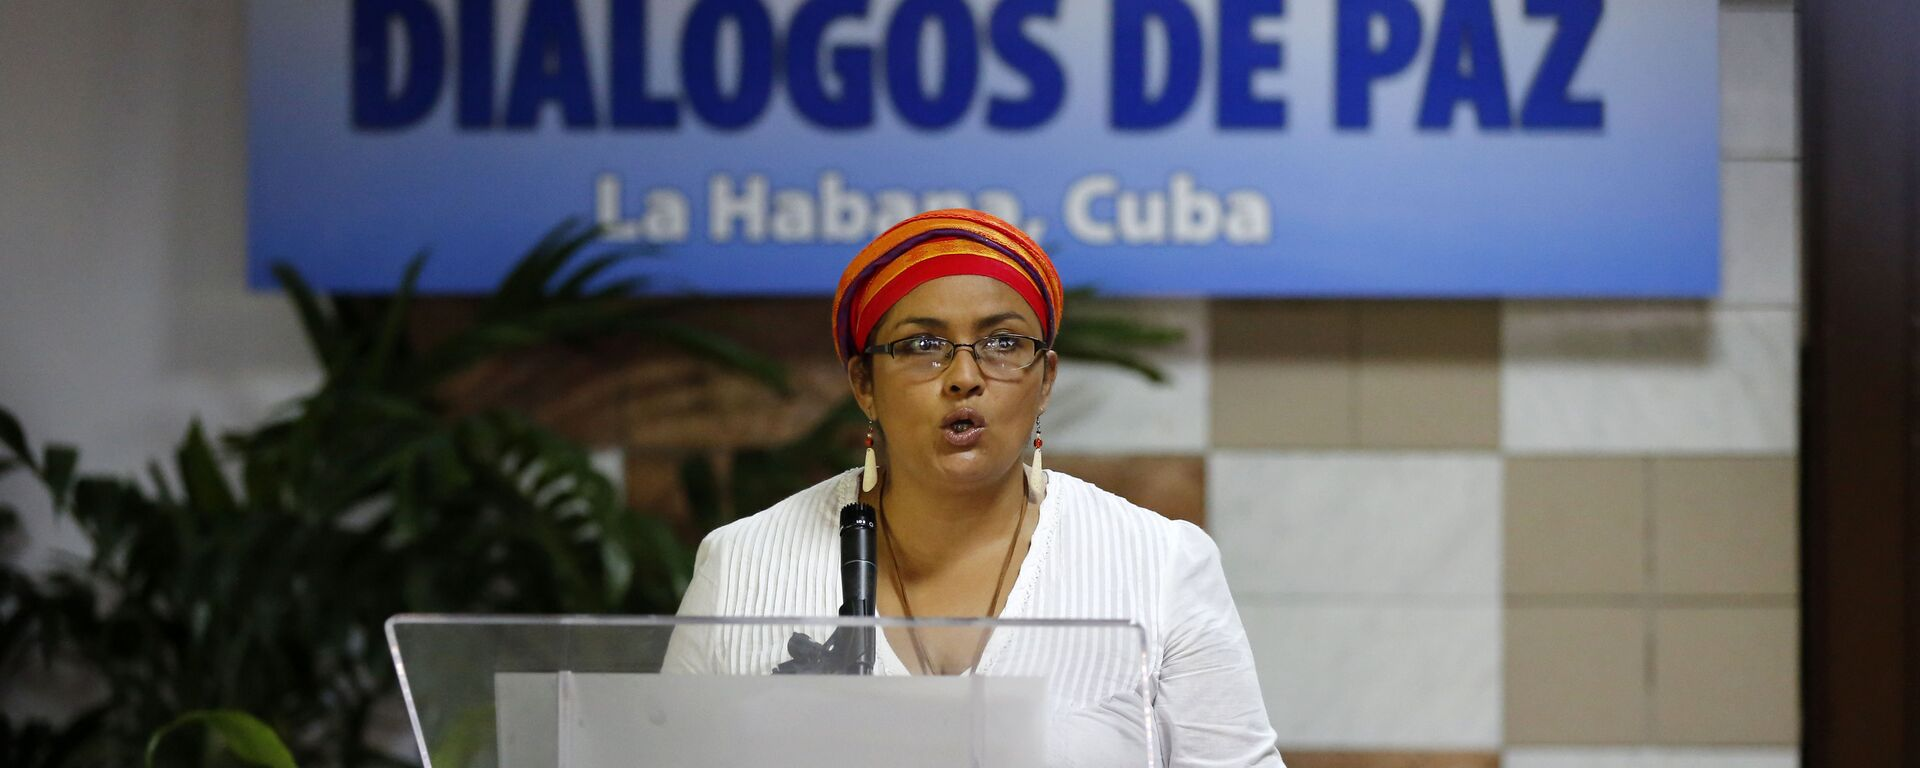 Victoria Sandino, member of the Revolutionary Armed Forces of Colombia, FARC, reads a statement before the start of a new round of peace talks between the FARC rebels and the government of Colombia, in Havana, Cuba, Thursday, May 21, 2015 - Sputnik Mundo, 1920, 12.08.2021